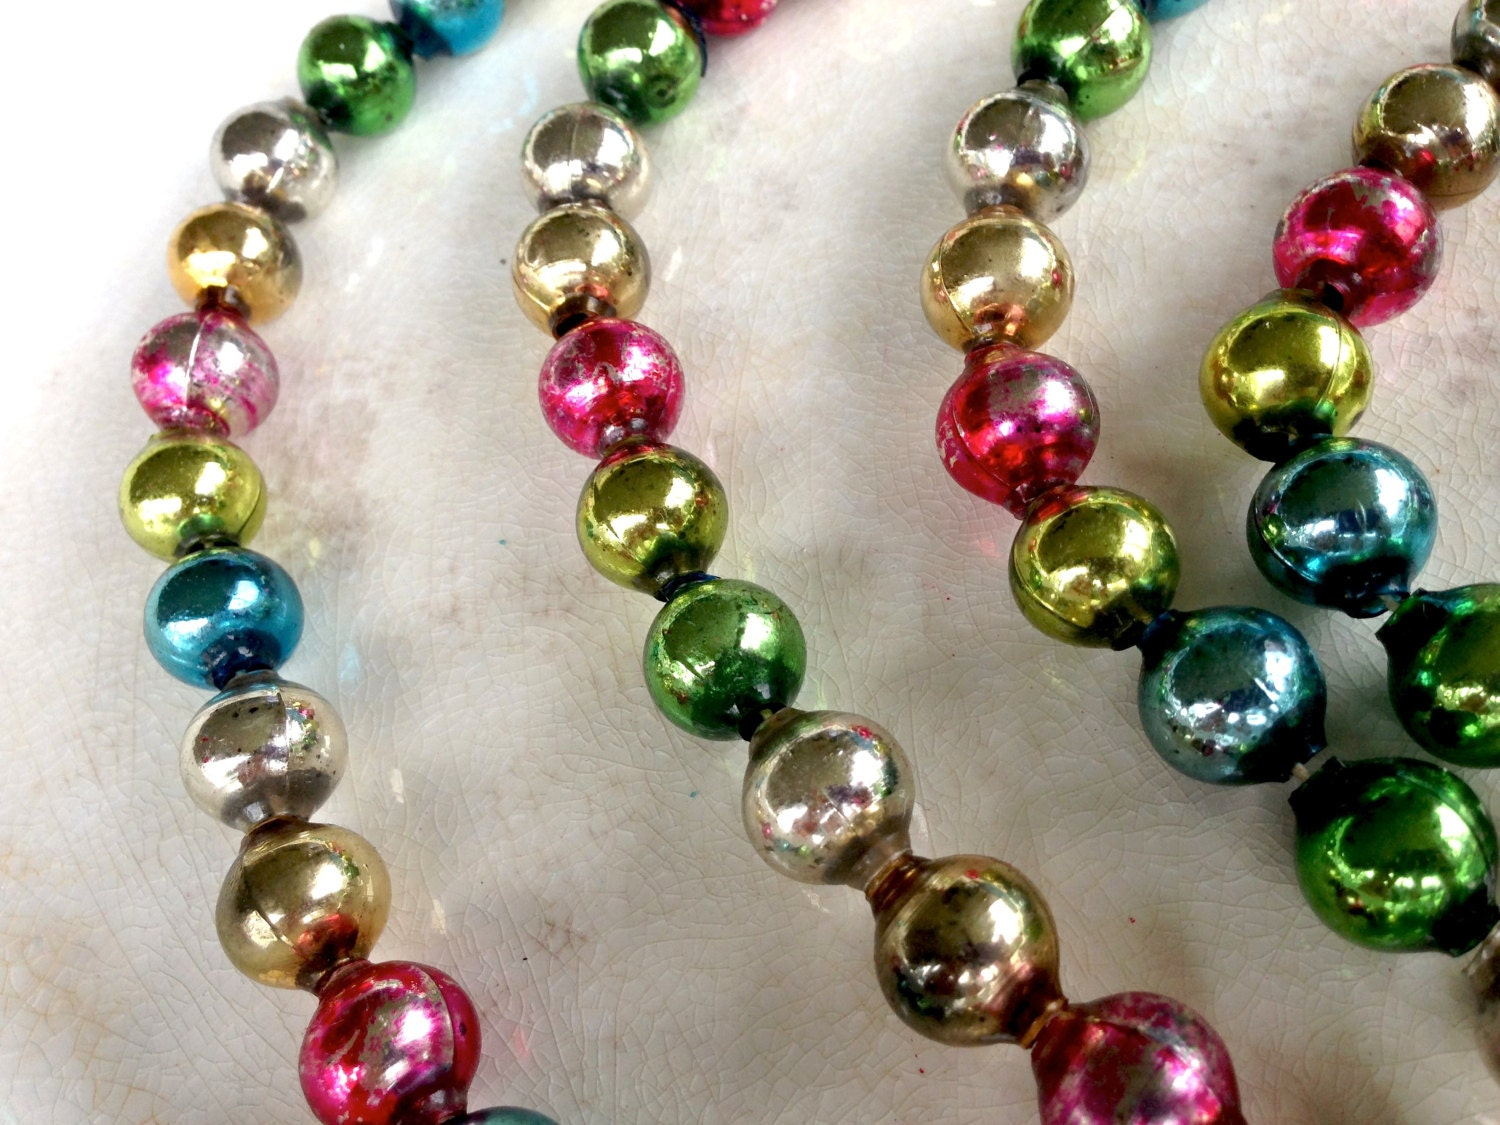 Vintage Mercury Glass Bead Garland Vintage Christmas